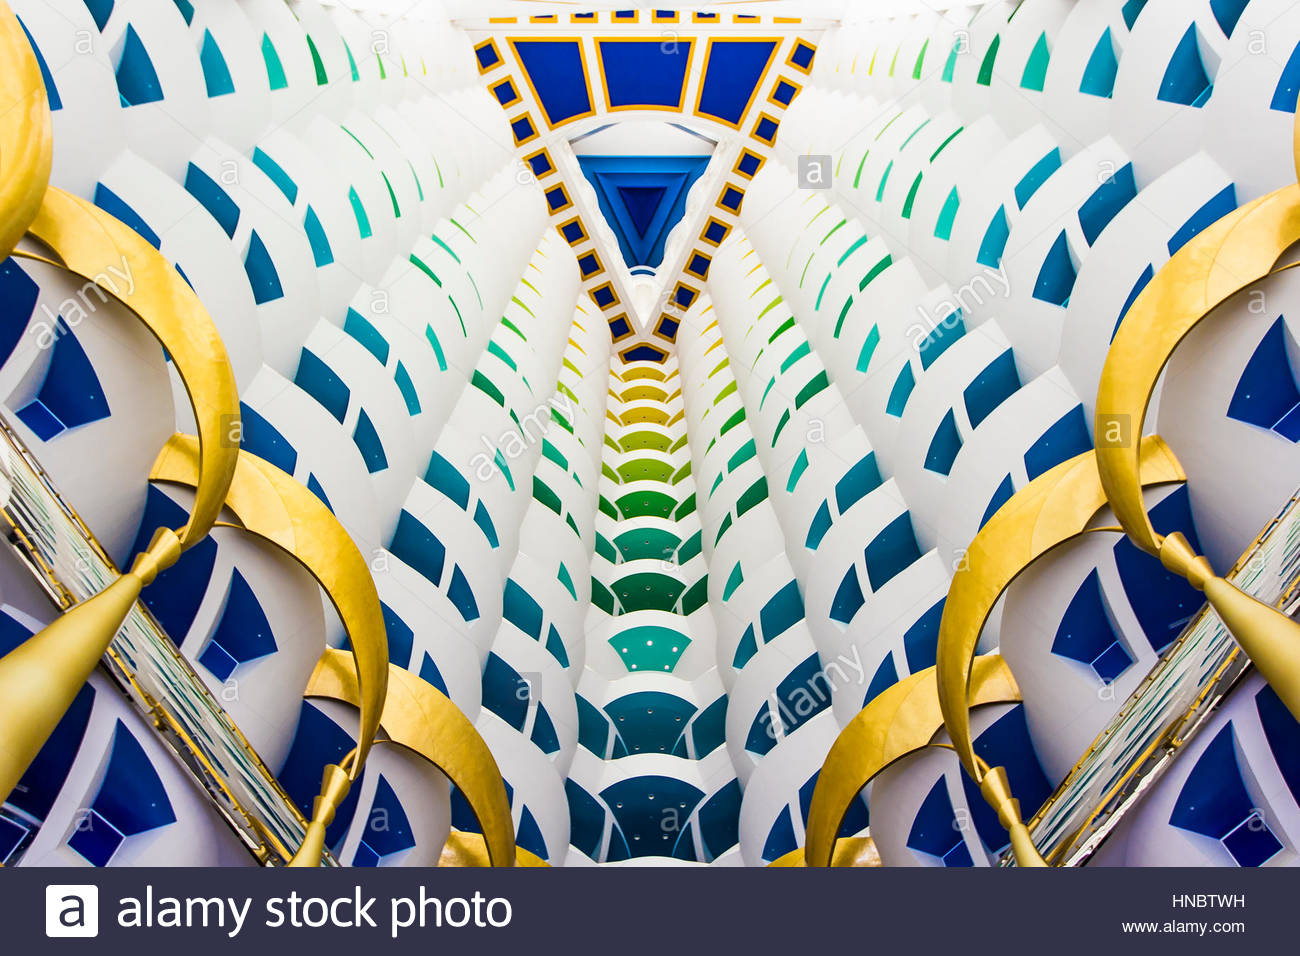 Looking straight up inside the ultra-modern, colorful atrium at the Burj Al Arab hotel. - Stock Image